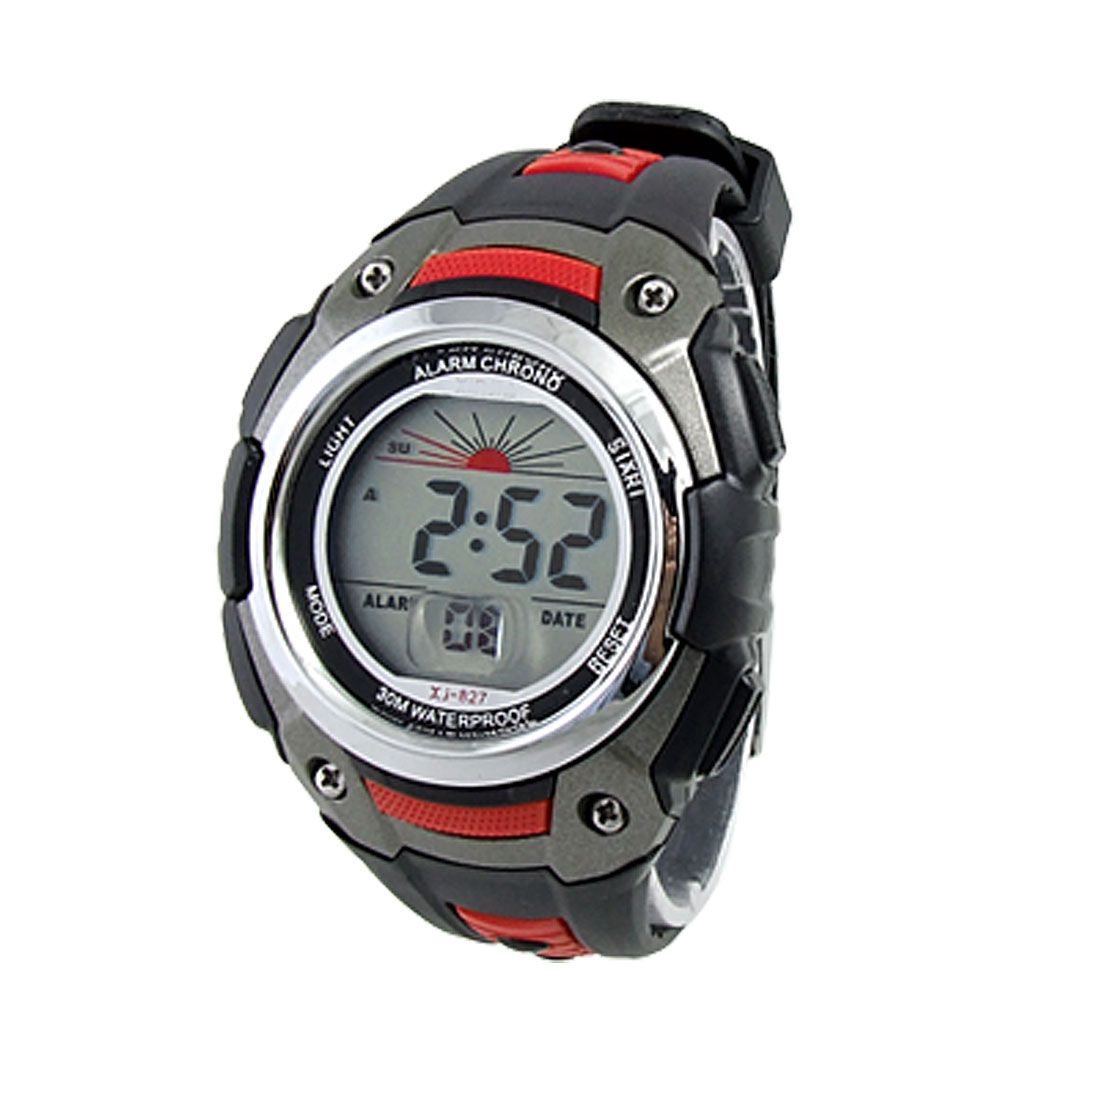 Silver Tone Round Dial Stopwatch Time Date Alarm Digital Sports Watch